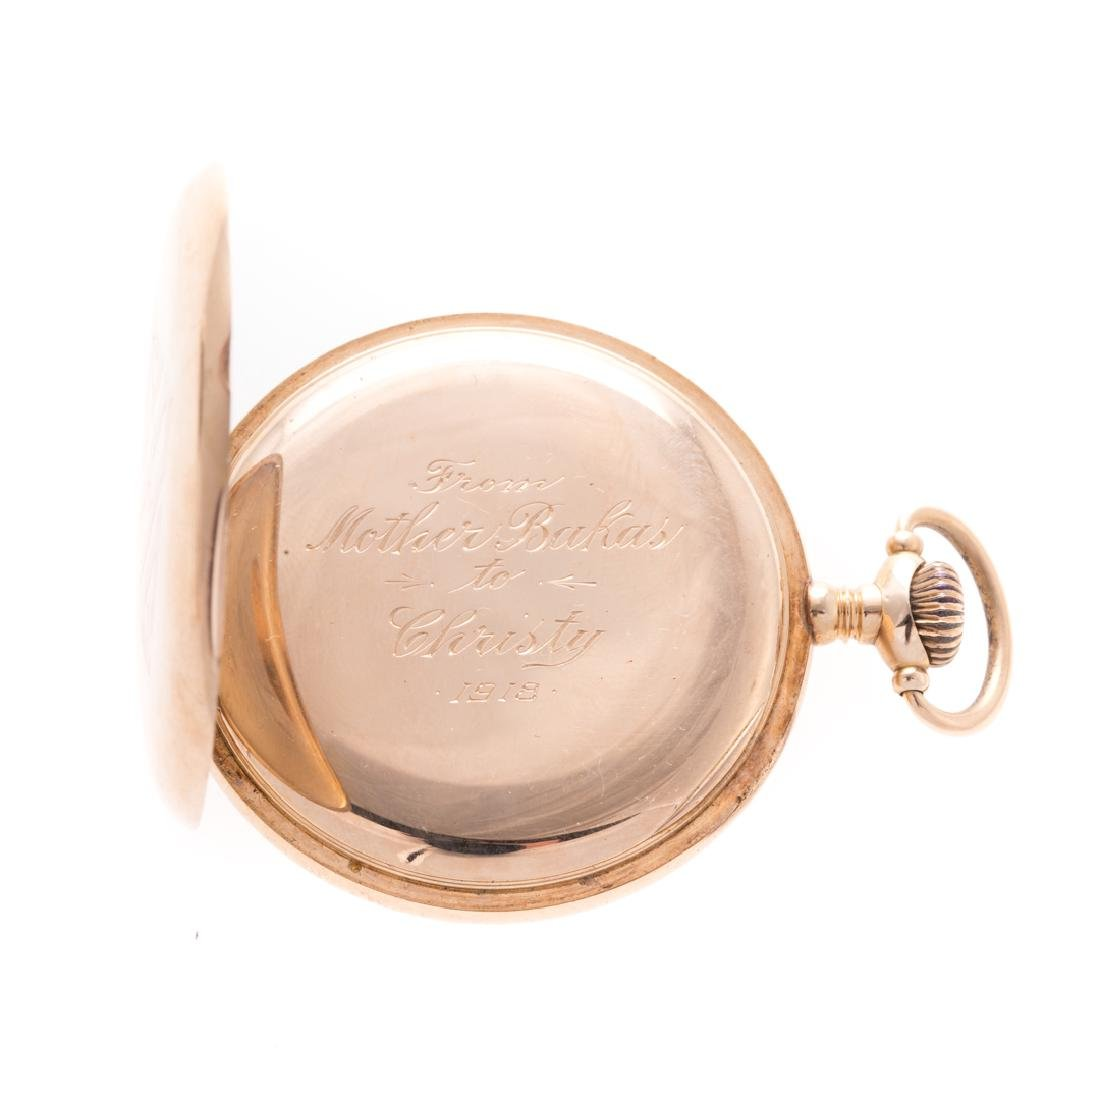 A Gentlemen's Waltham Pocket Watch in 14K - 3